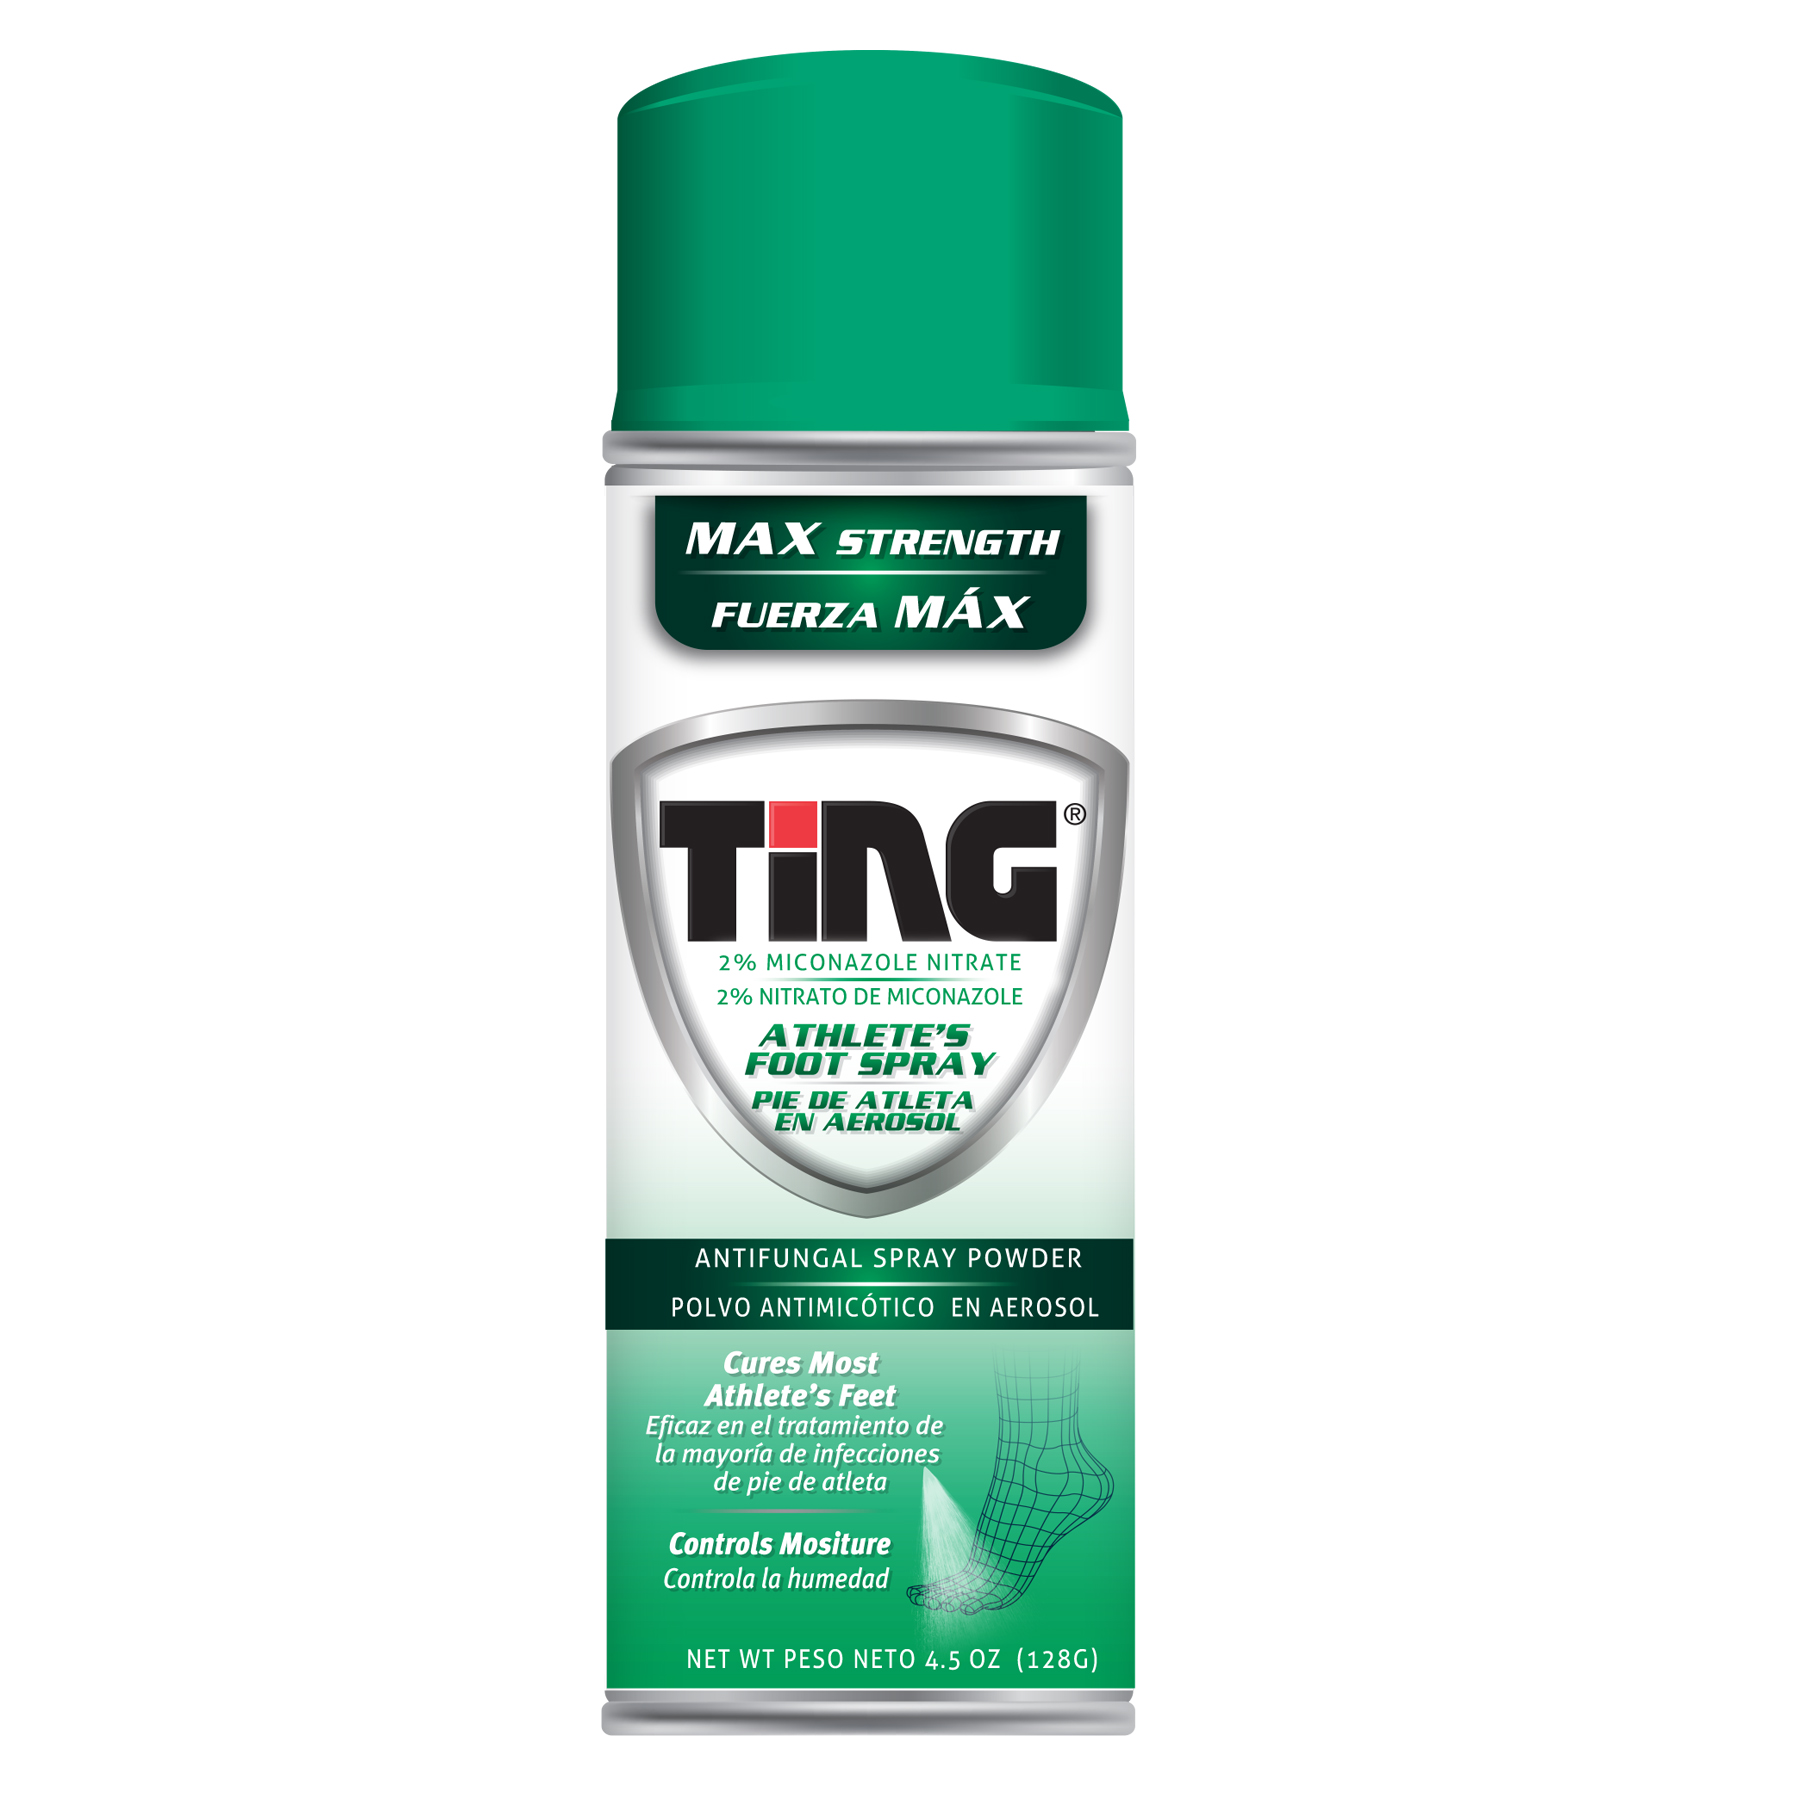 TING ANTIFUNG PWD 4.5OZ SPRY 12